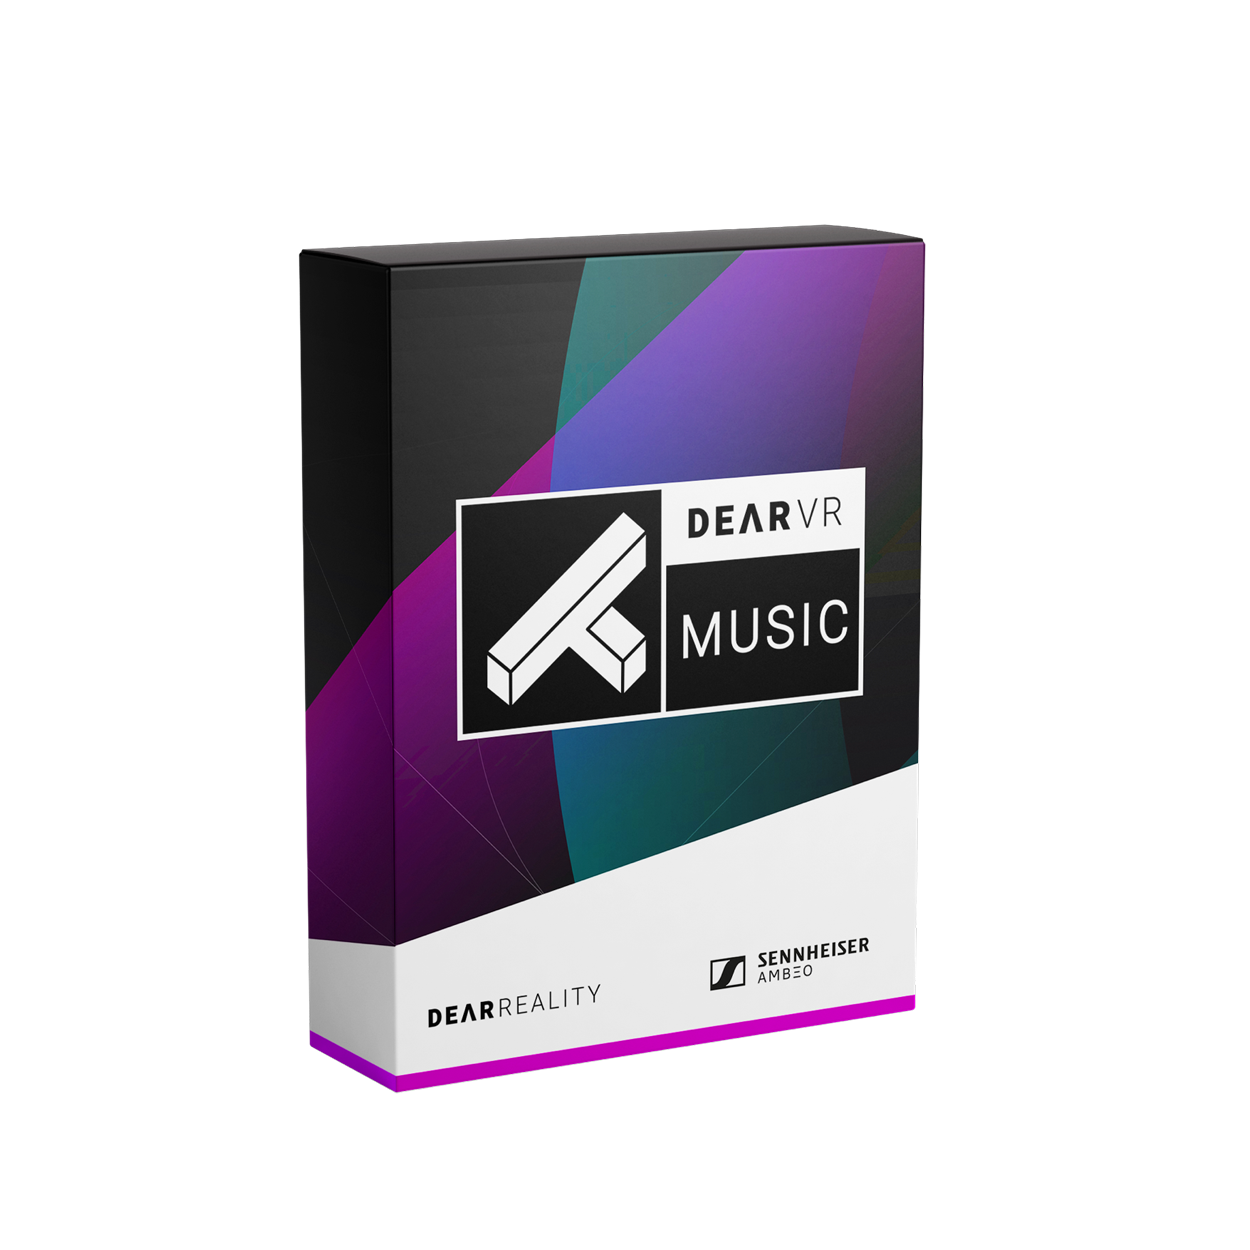 dearVR MUSIC packshot